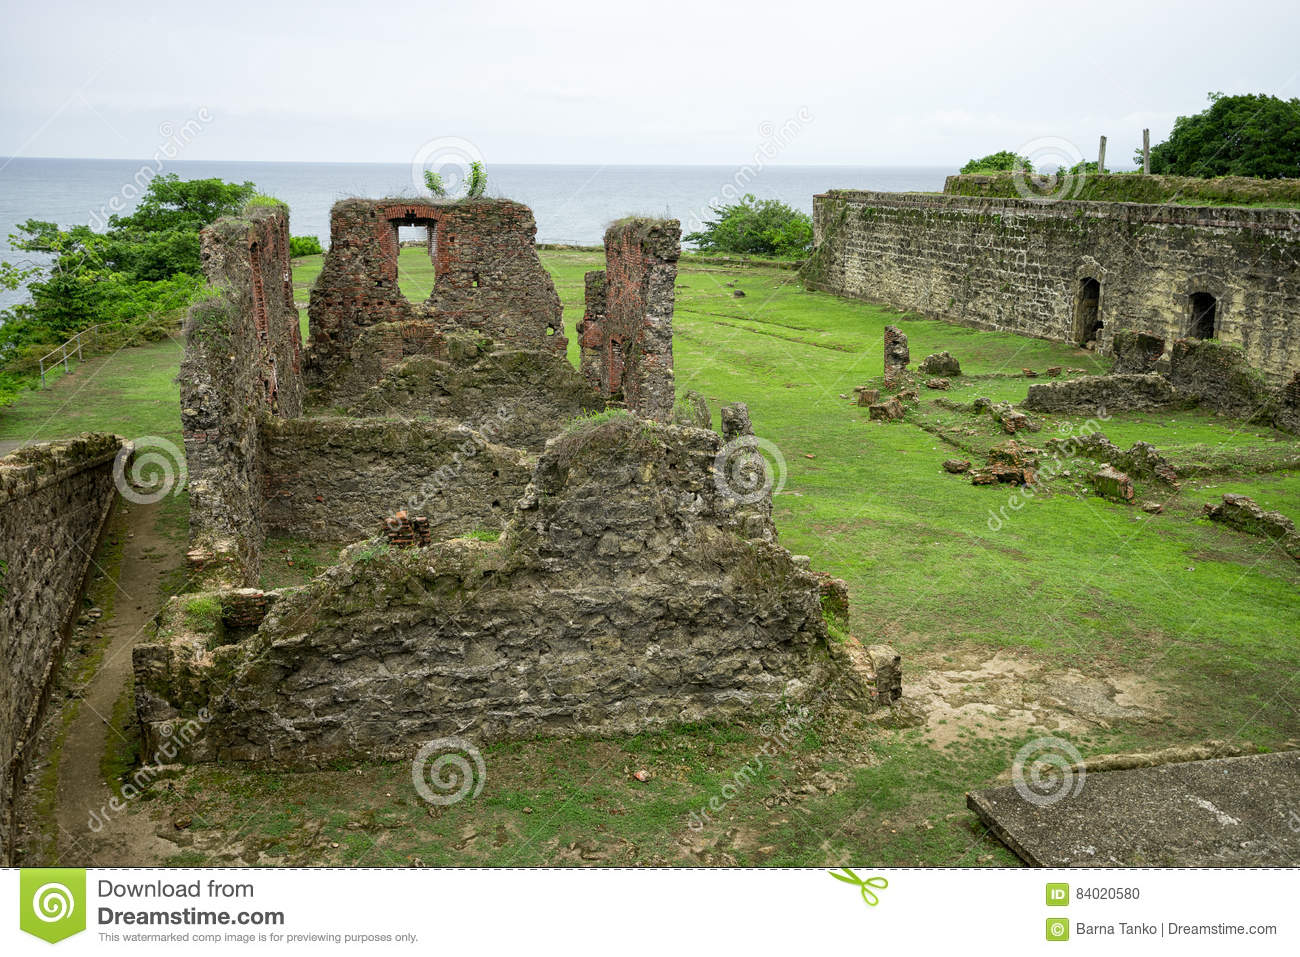 Old Spanish fort in Panama